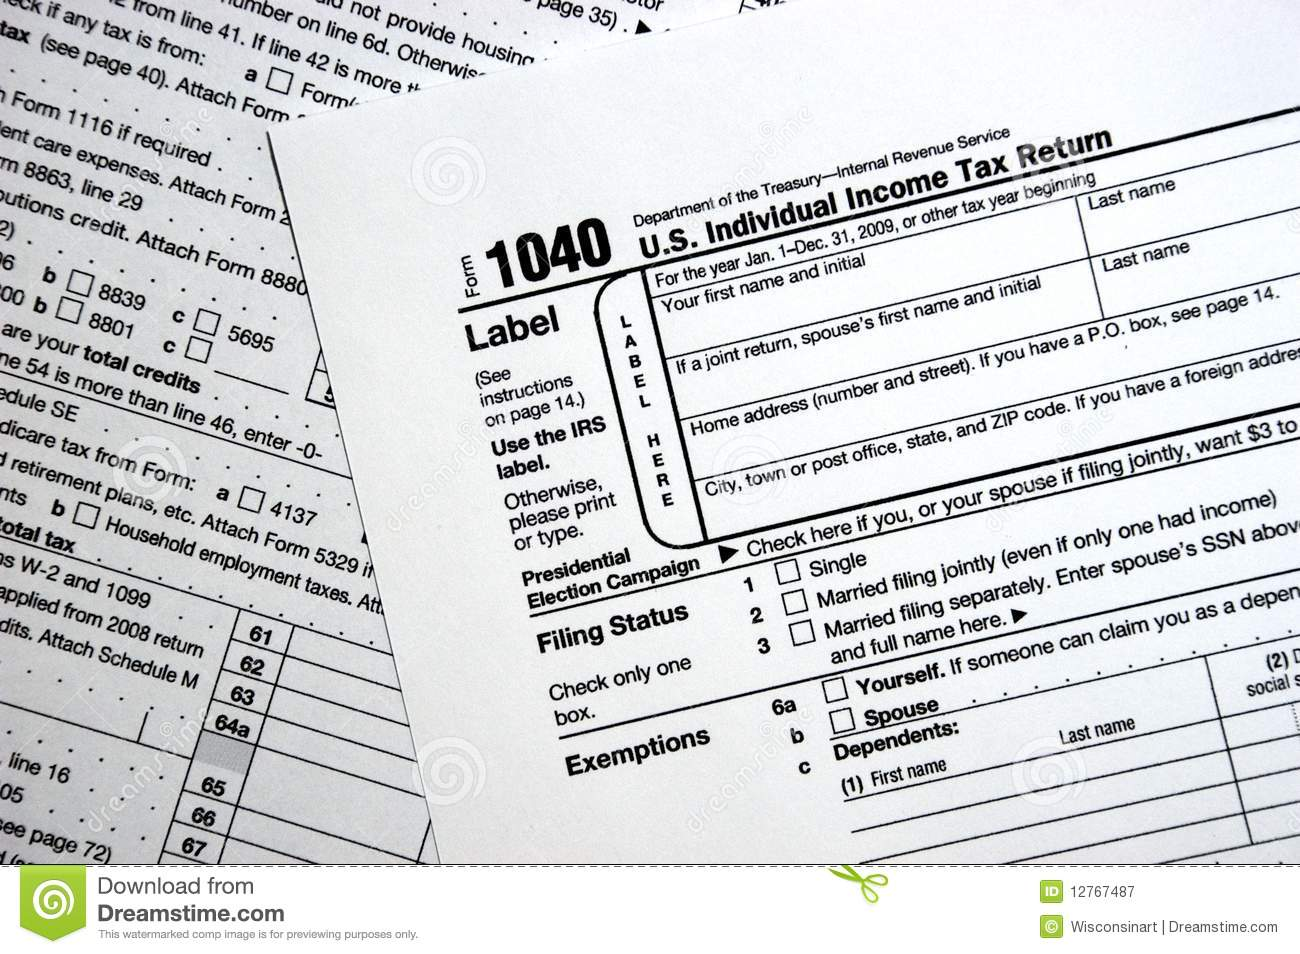 irs tax form 1040 instructions